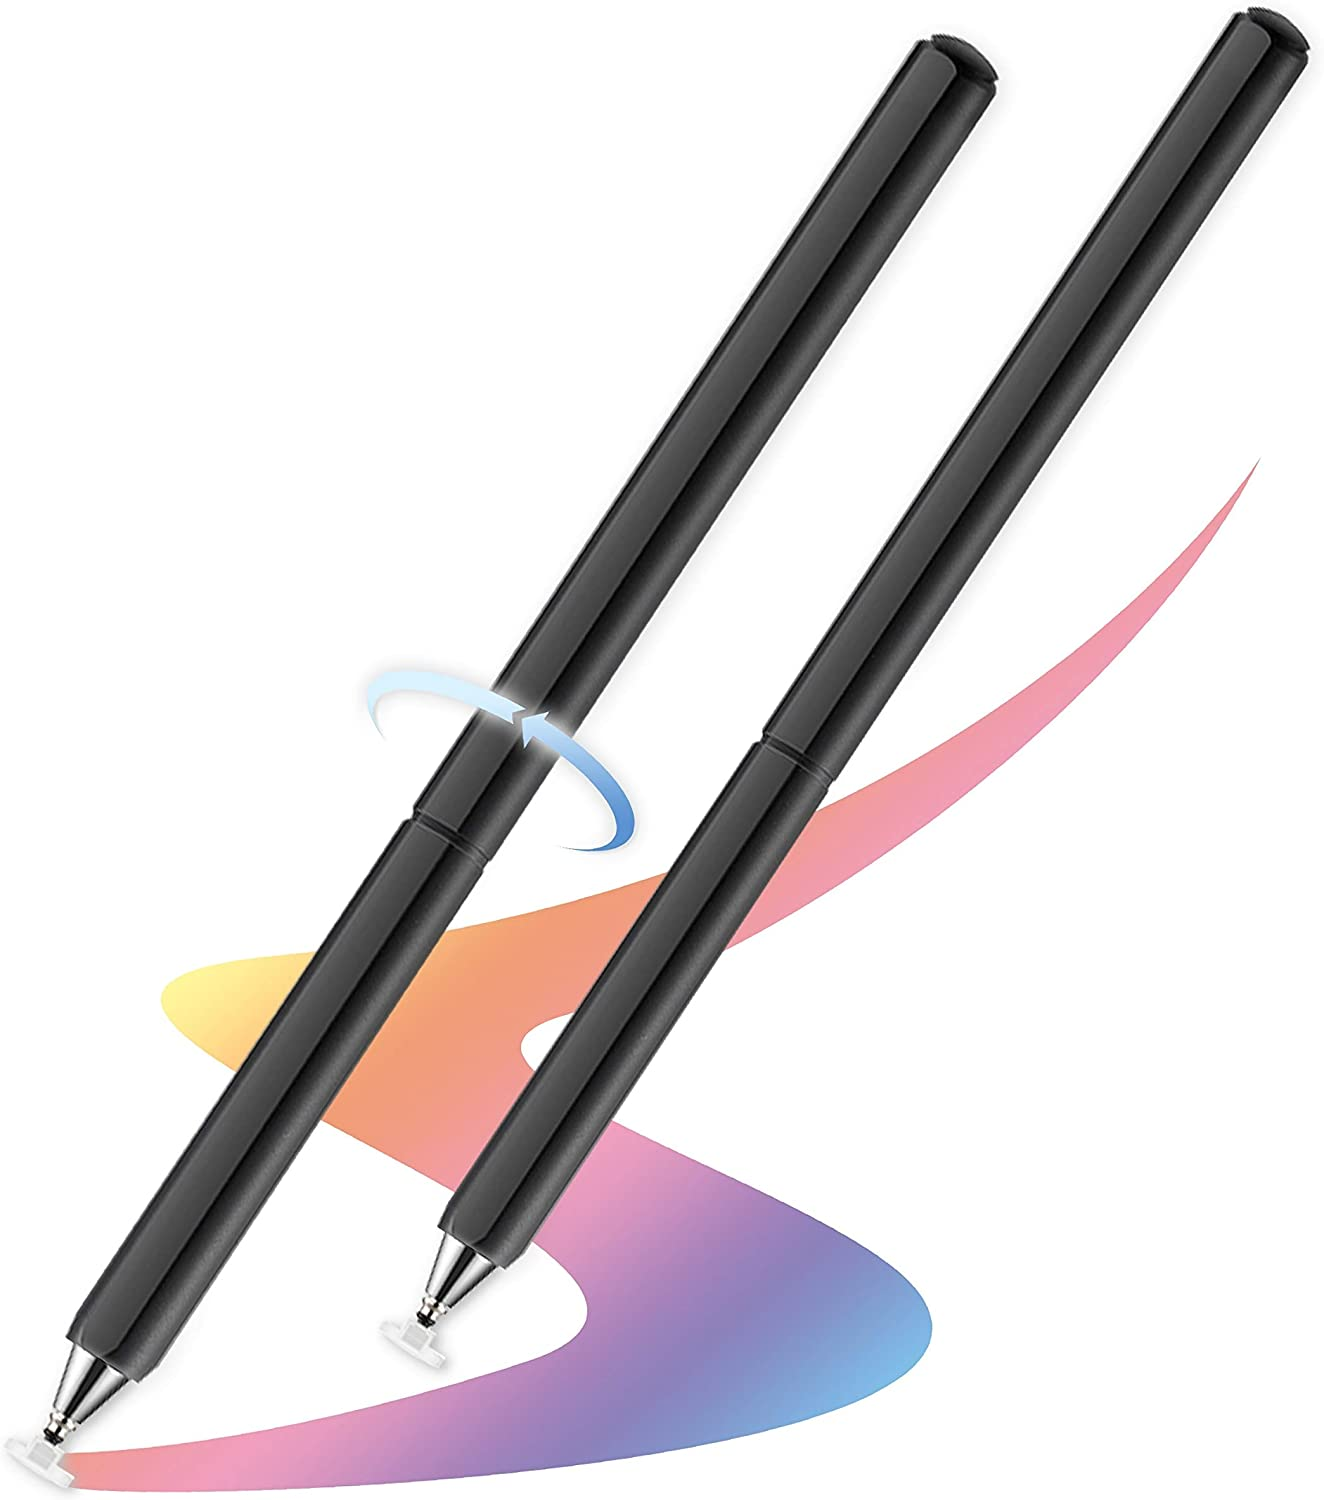 Pen Stylus universal iPhone/iPad/Pro/Samsung/Galaxy/Tablet